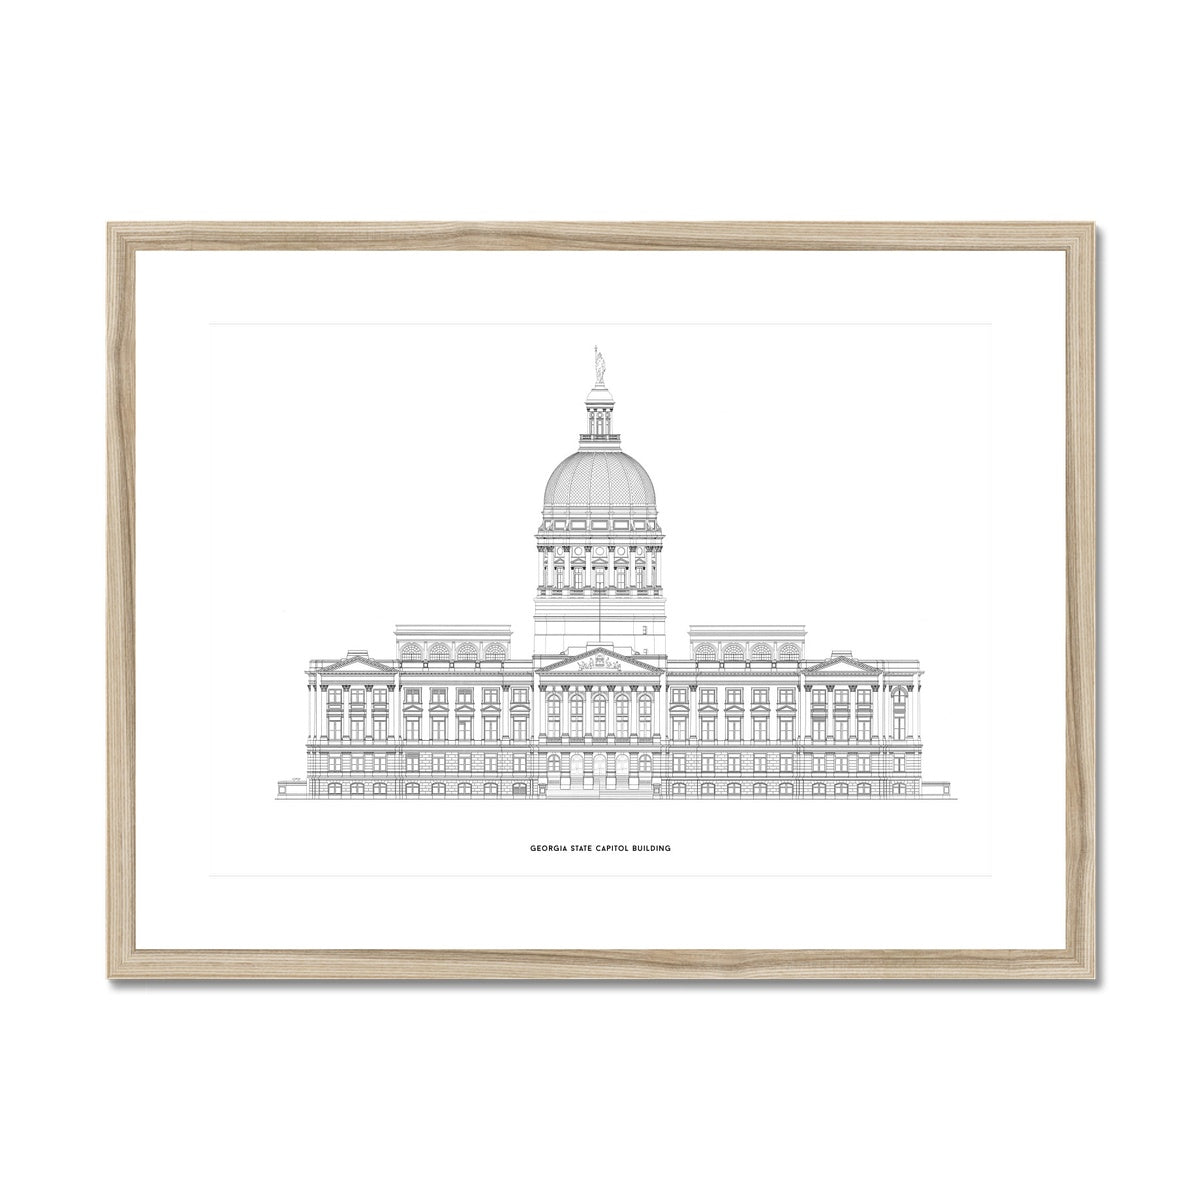 The Georgia State Capitol Building - West Elevation - White -  Framed & Mounted Print